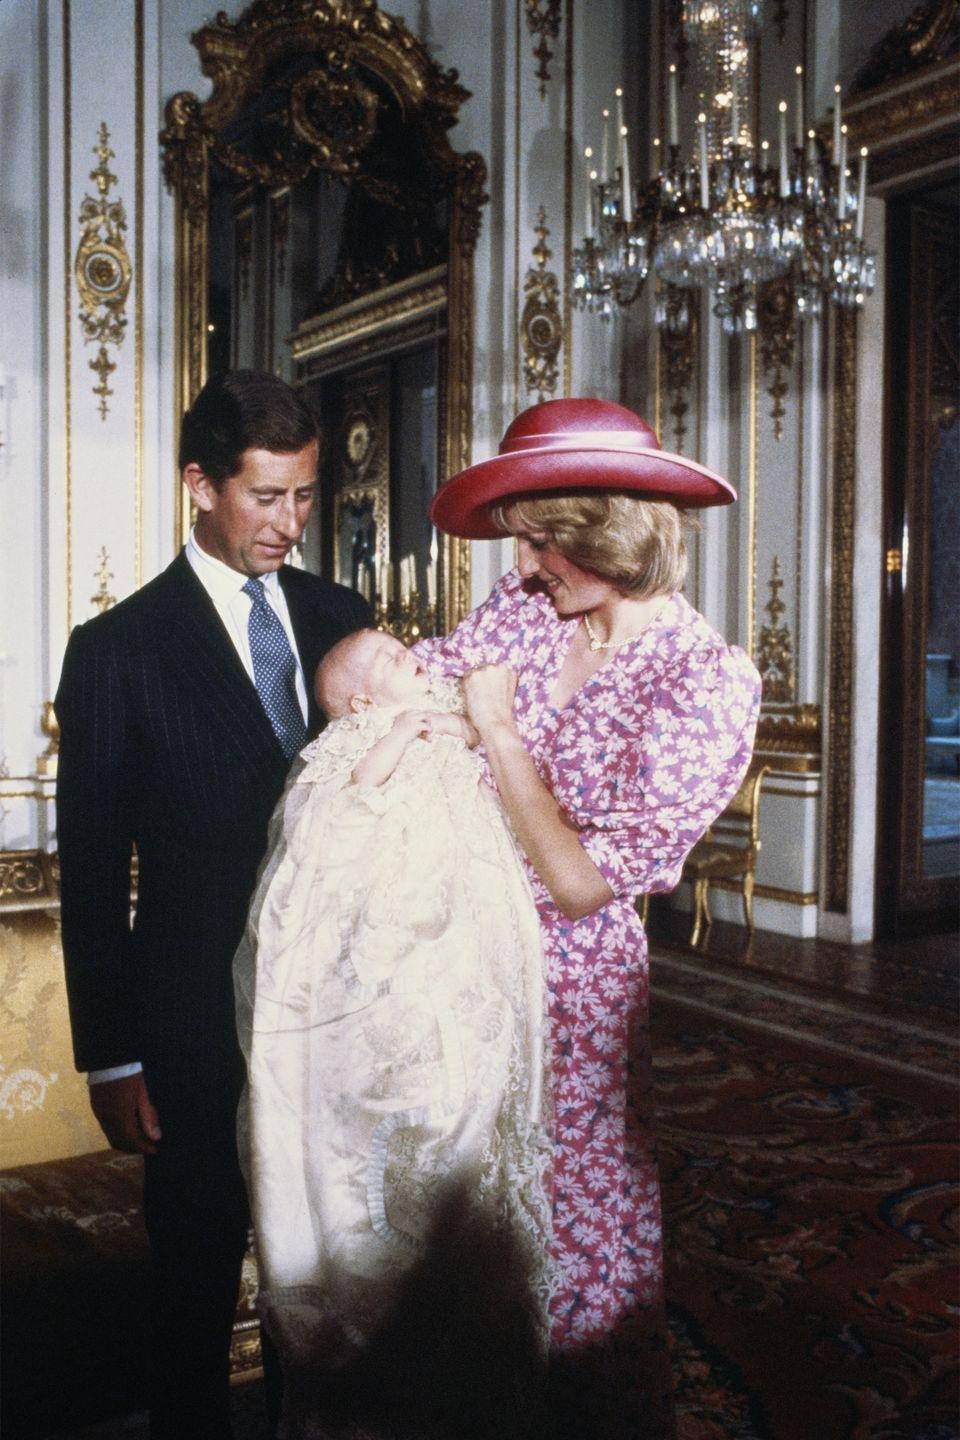 <p>In a pink floral dress and pink hat at the christening of Prince William in the music room at Buckingham Palace. </p>